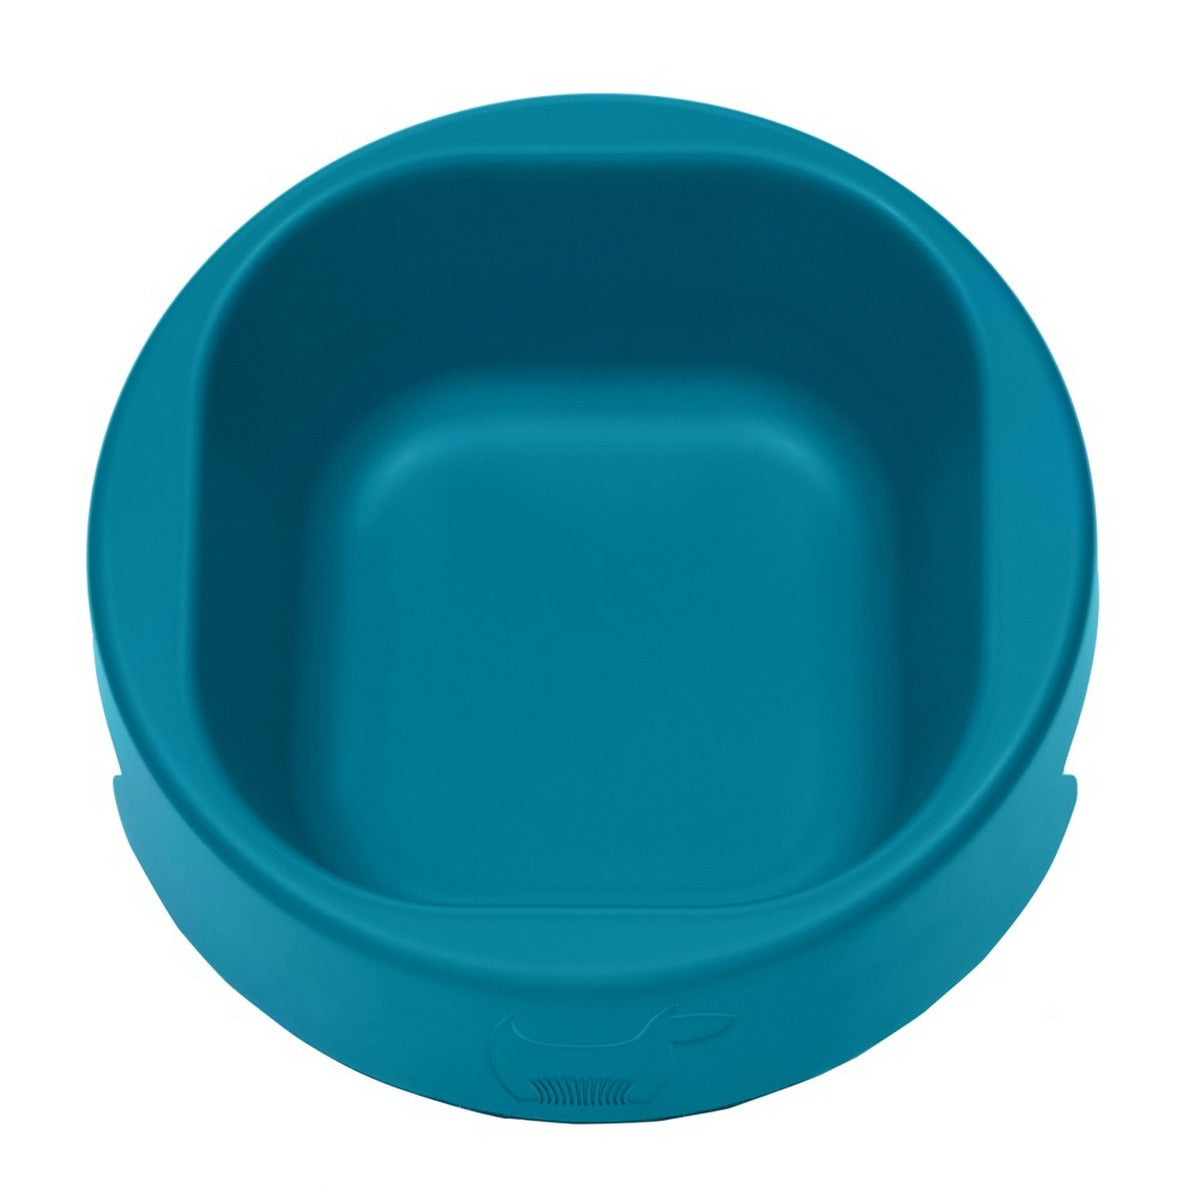 HERO Bowl Ocean Blue Large 23cm (1000ml) - Hownd